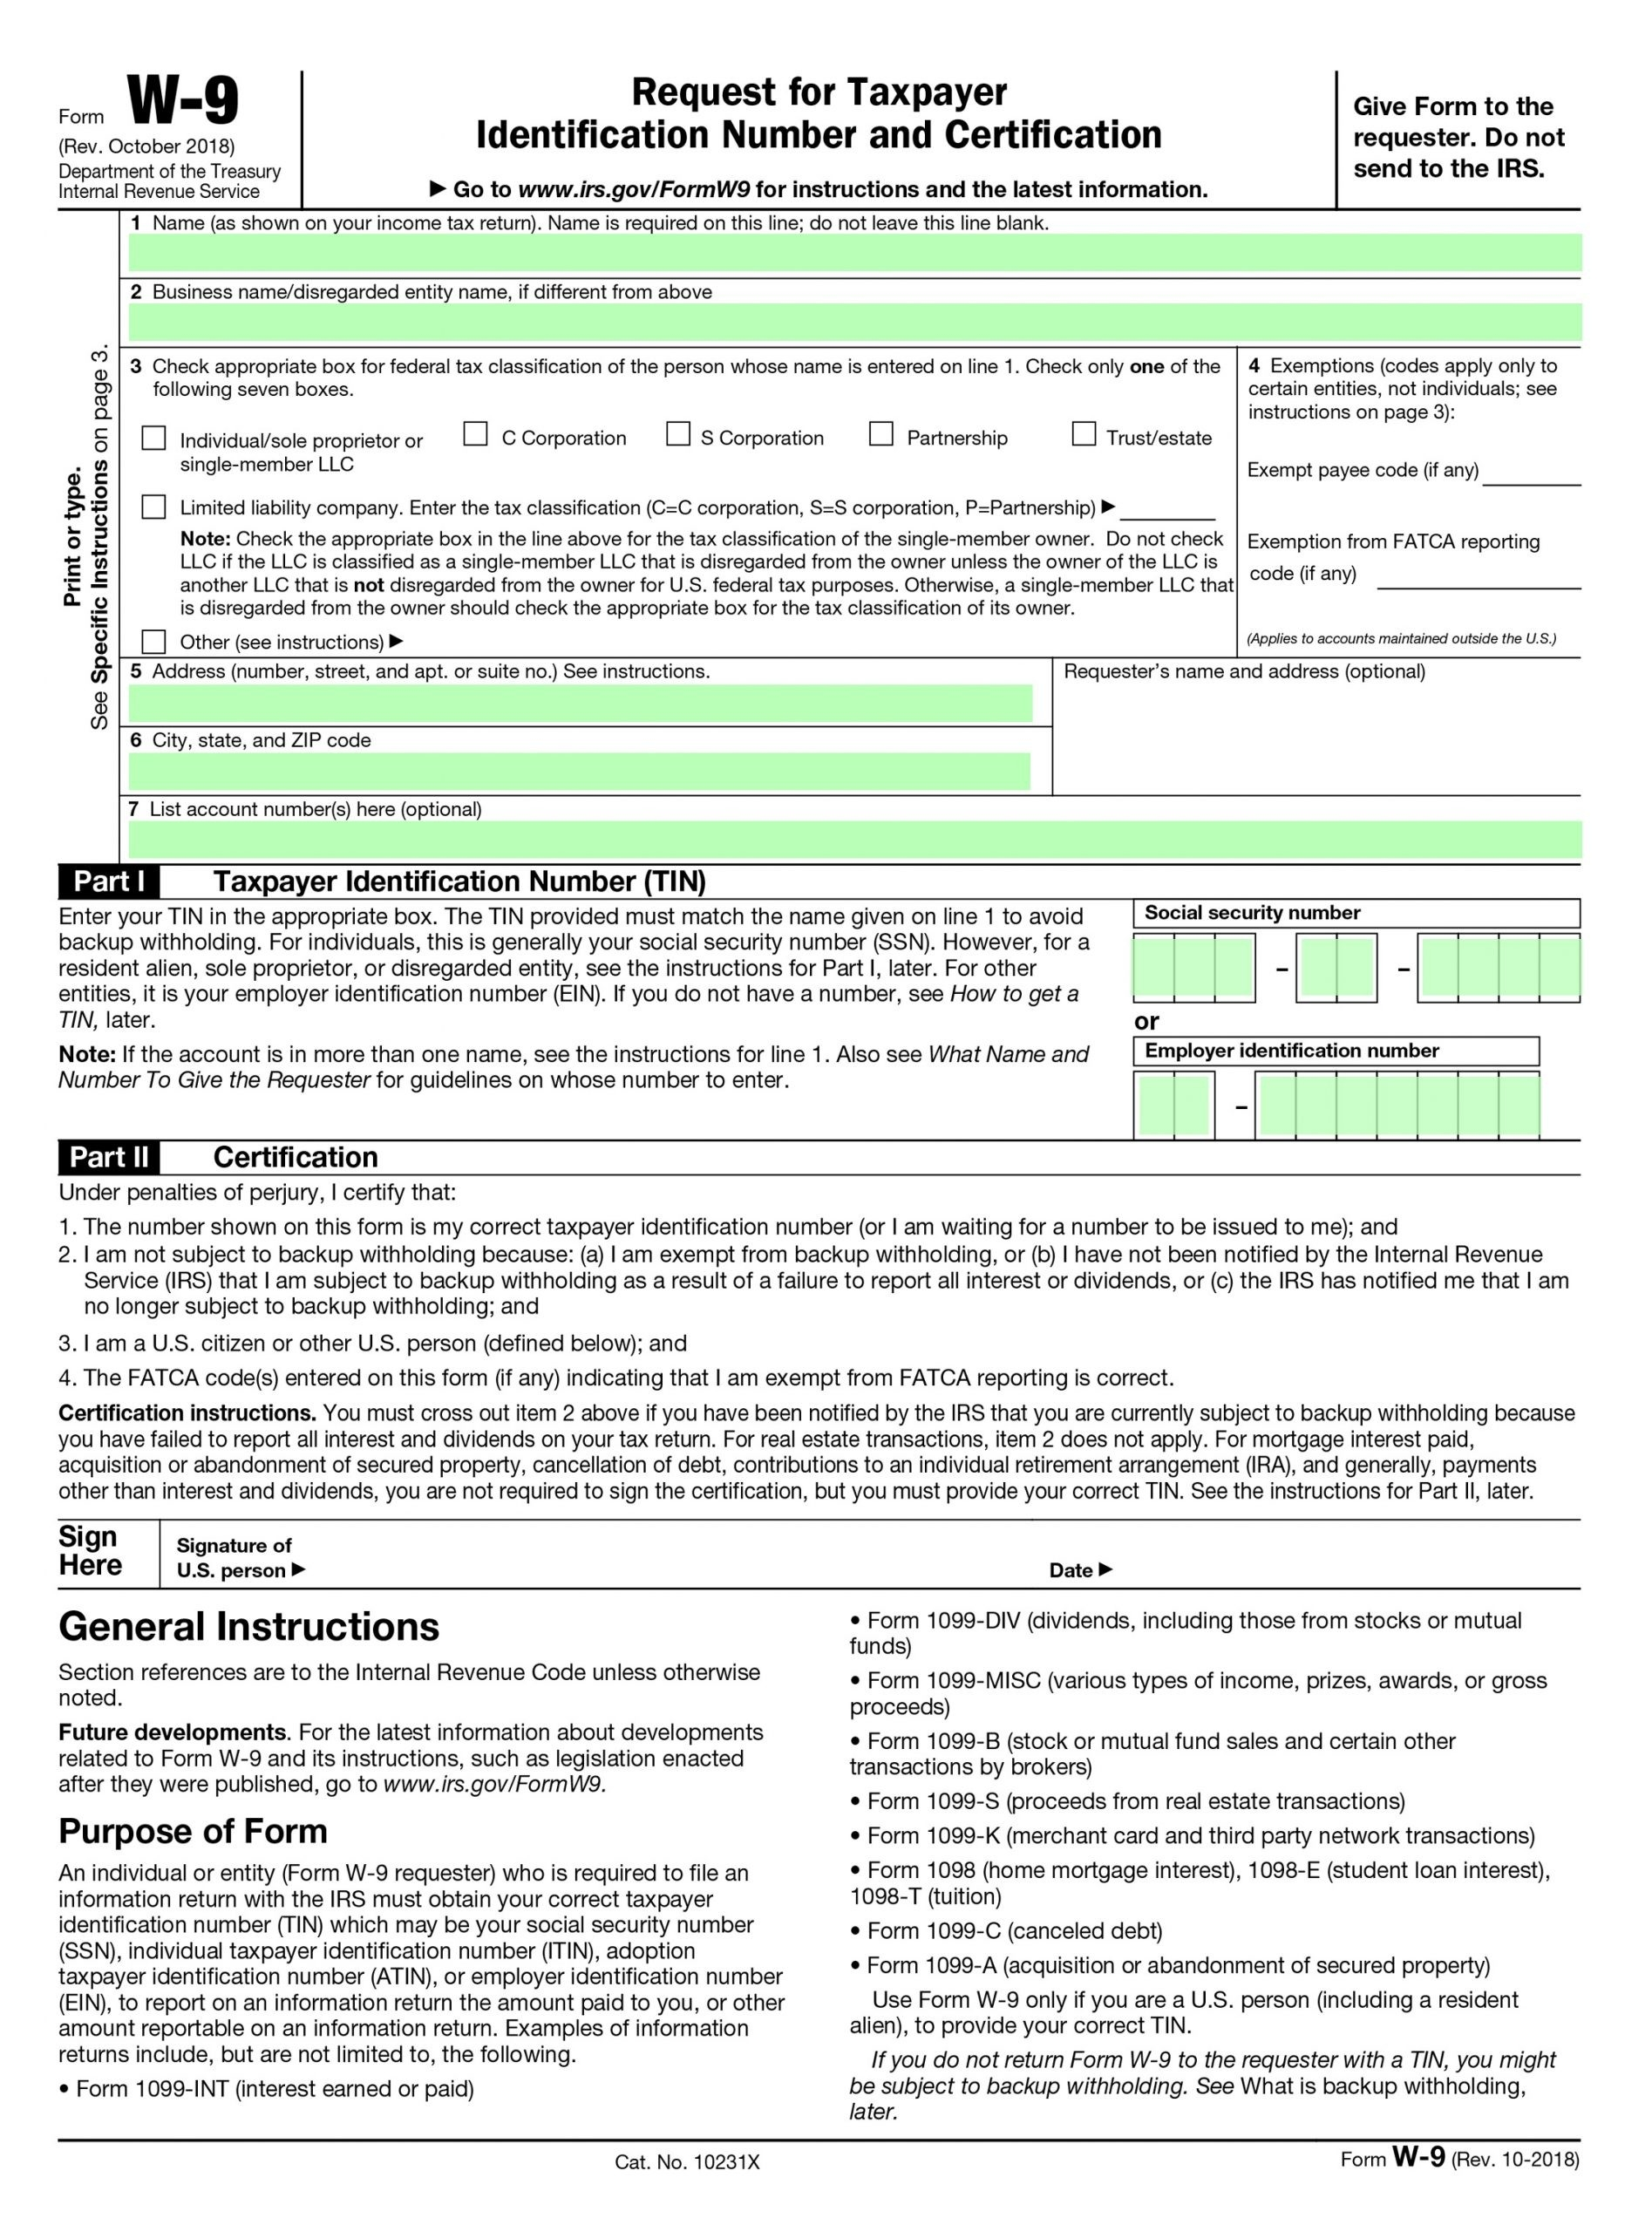 Filling Irs Form W-9 – Editable, Printable Blank | Fill Out-Blank Printable W9 Form